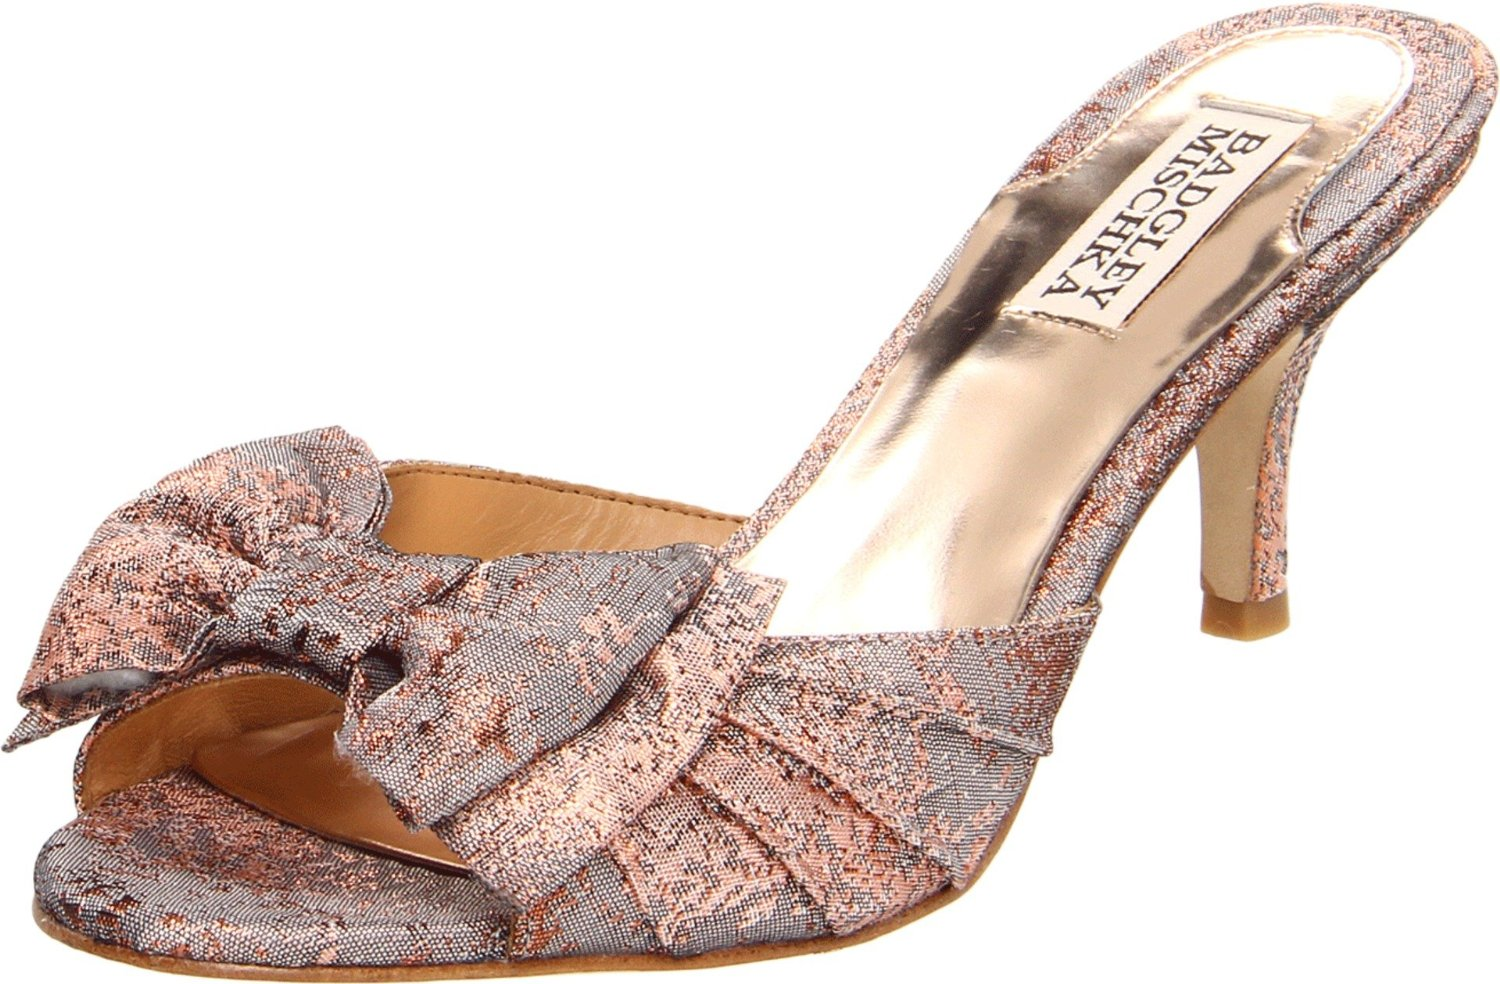 Badgley Mischka Badgley Mischka Womens Maddy Sandal In